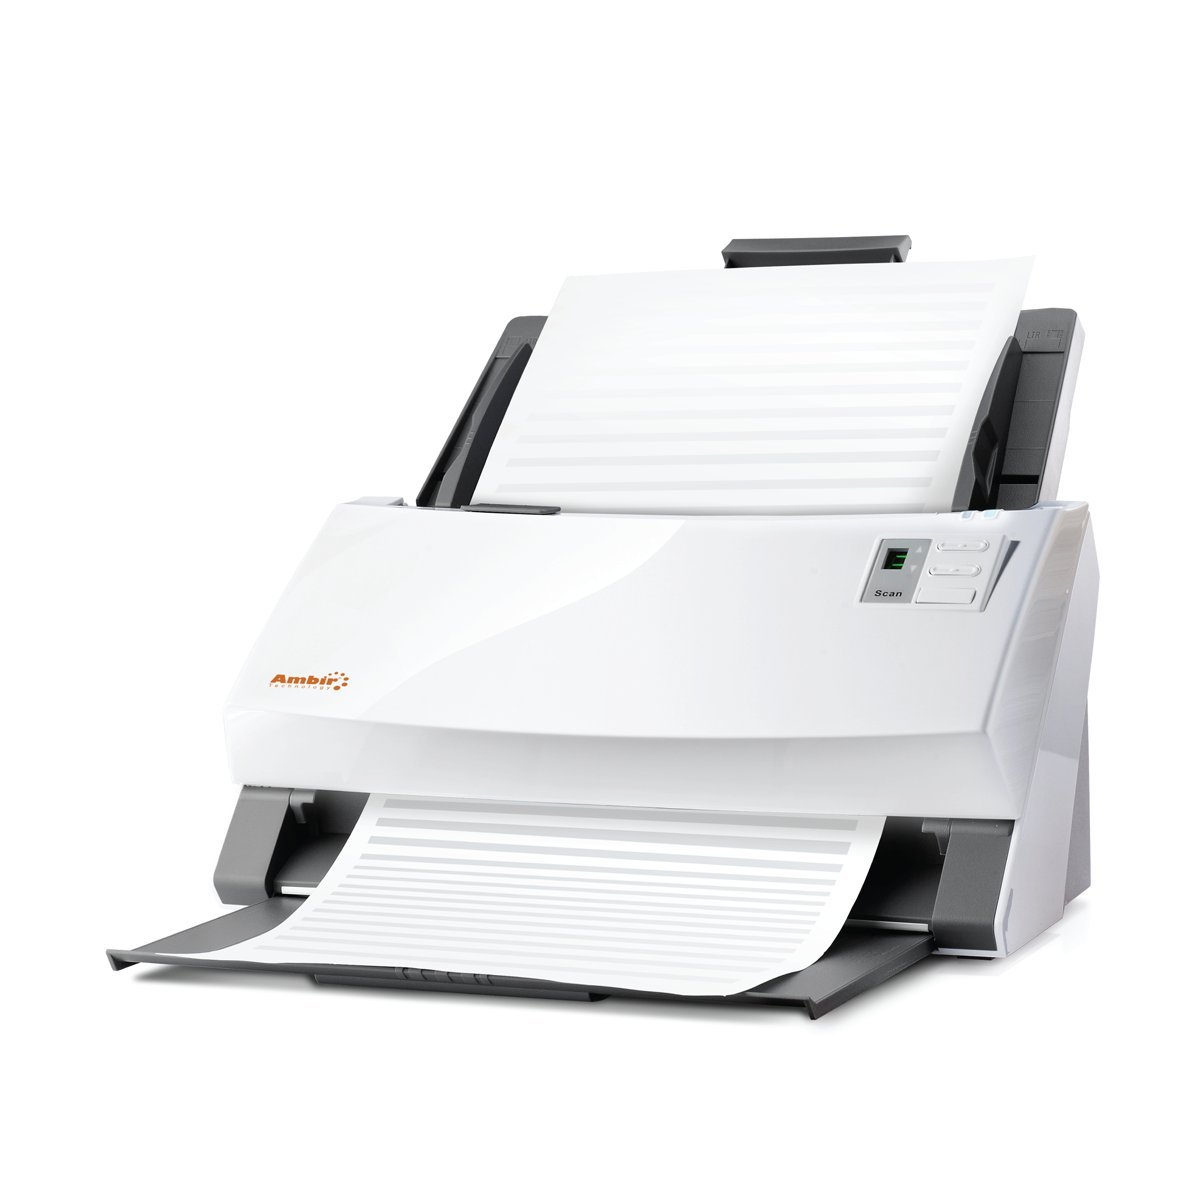 Ambir ImageScan Pro 960u (DS960-NP) 60ppm High-Speed Document Scanner with Full Version of Nuance Power PDF Software by Ambir (Image #1)